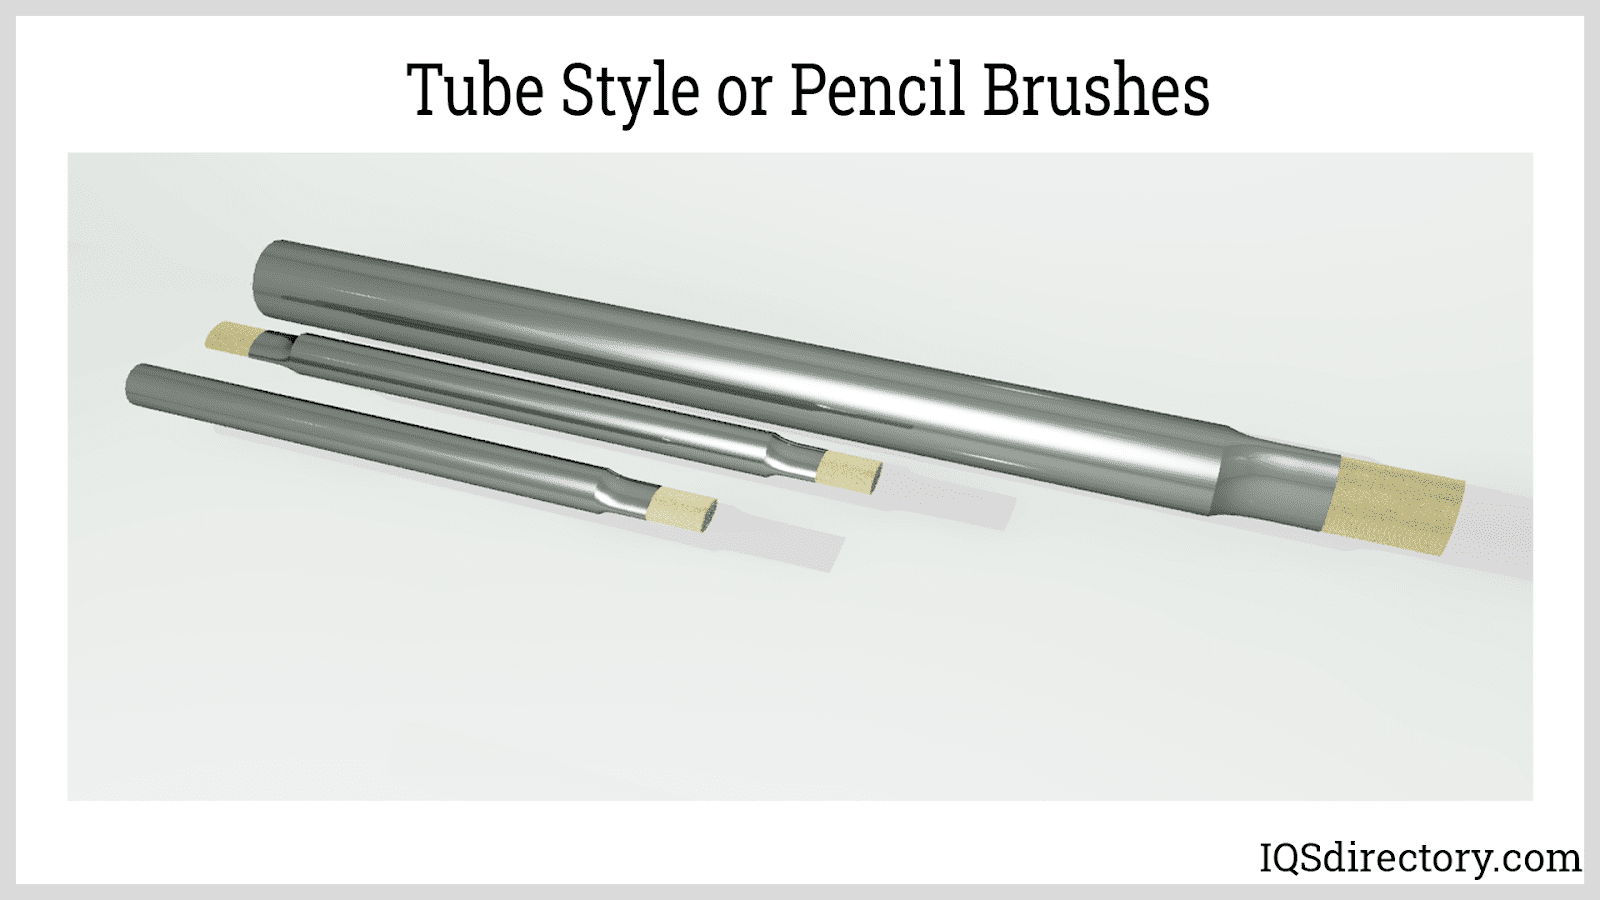 Tube Style or Pencil Brushes